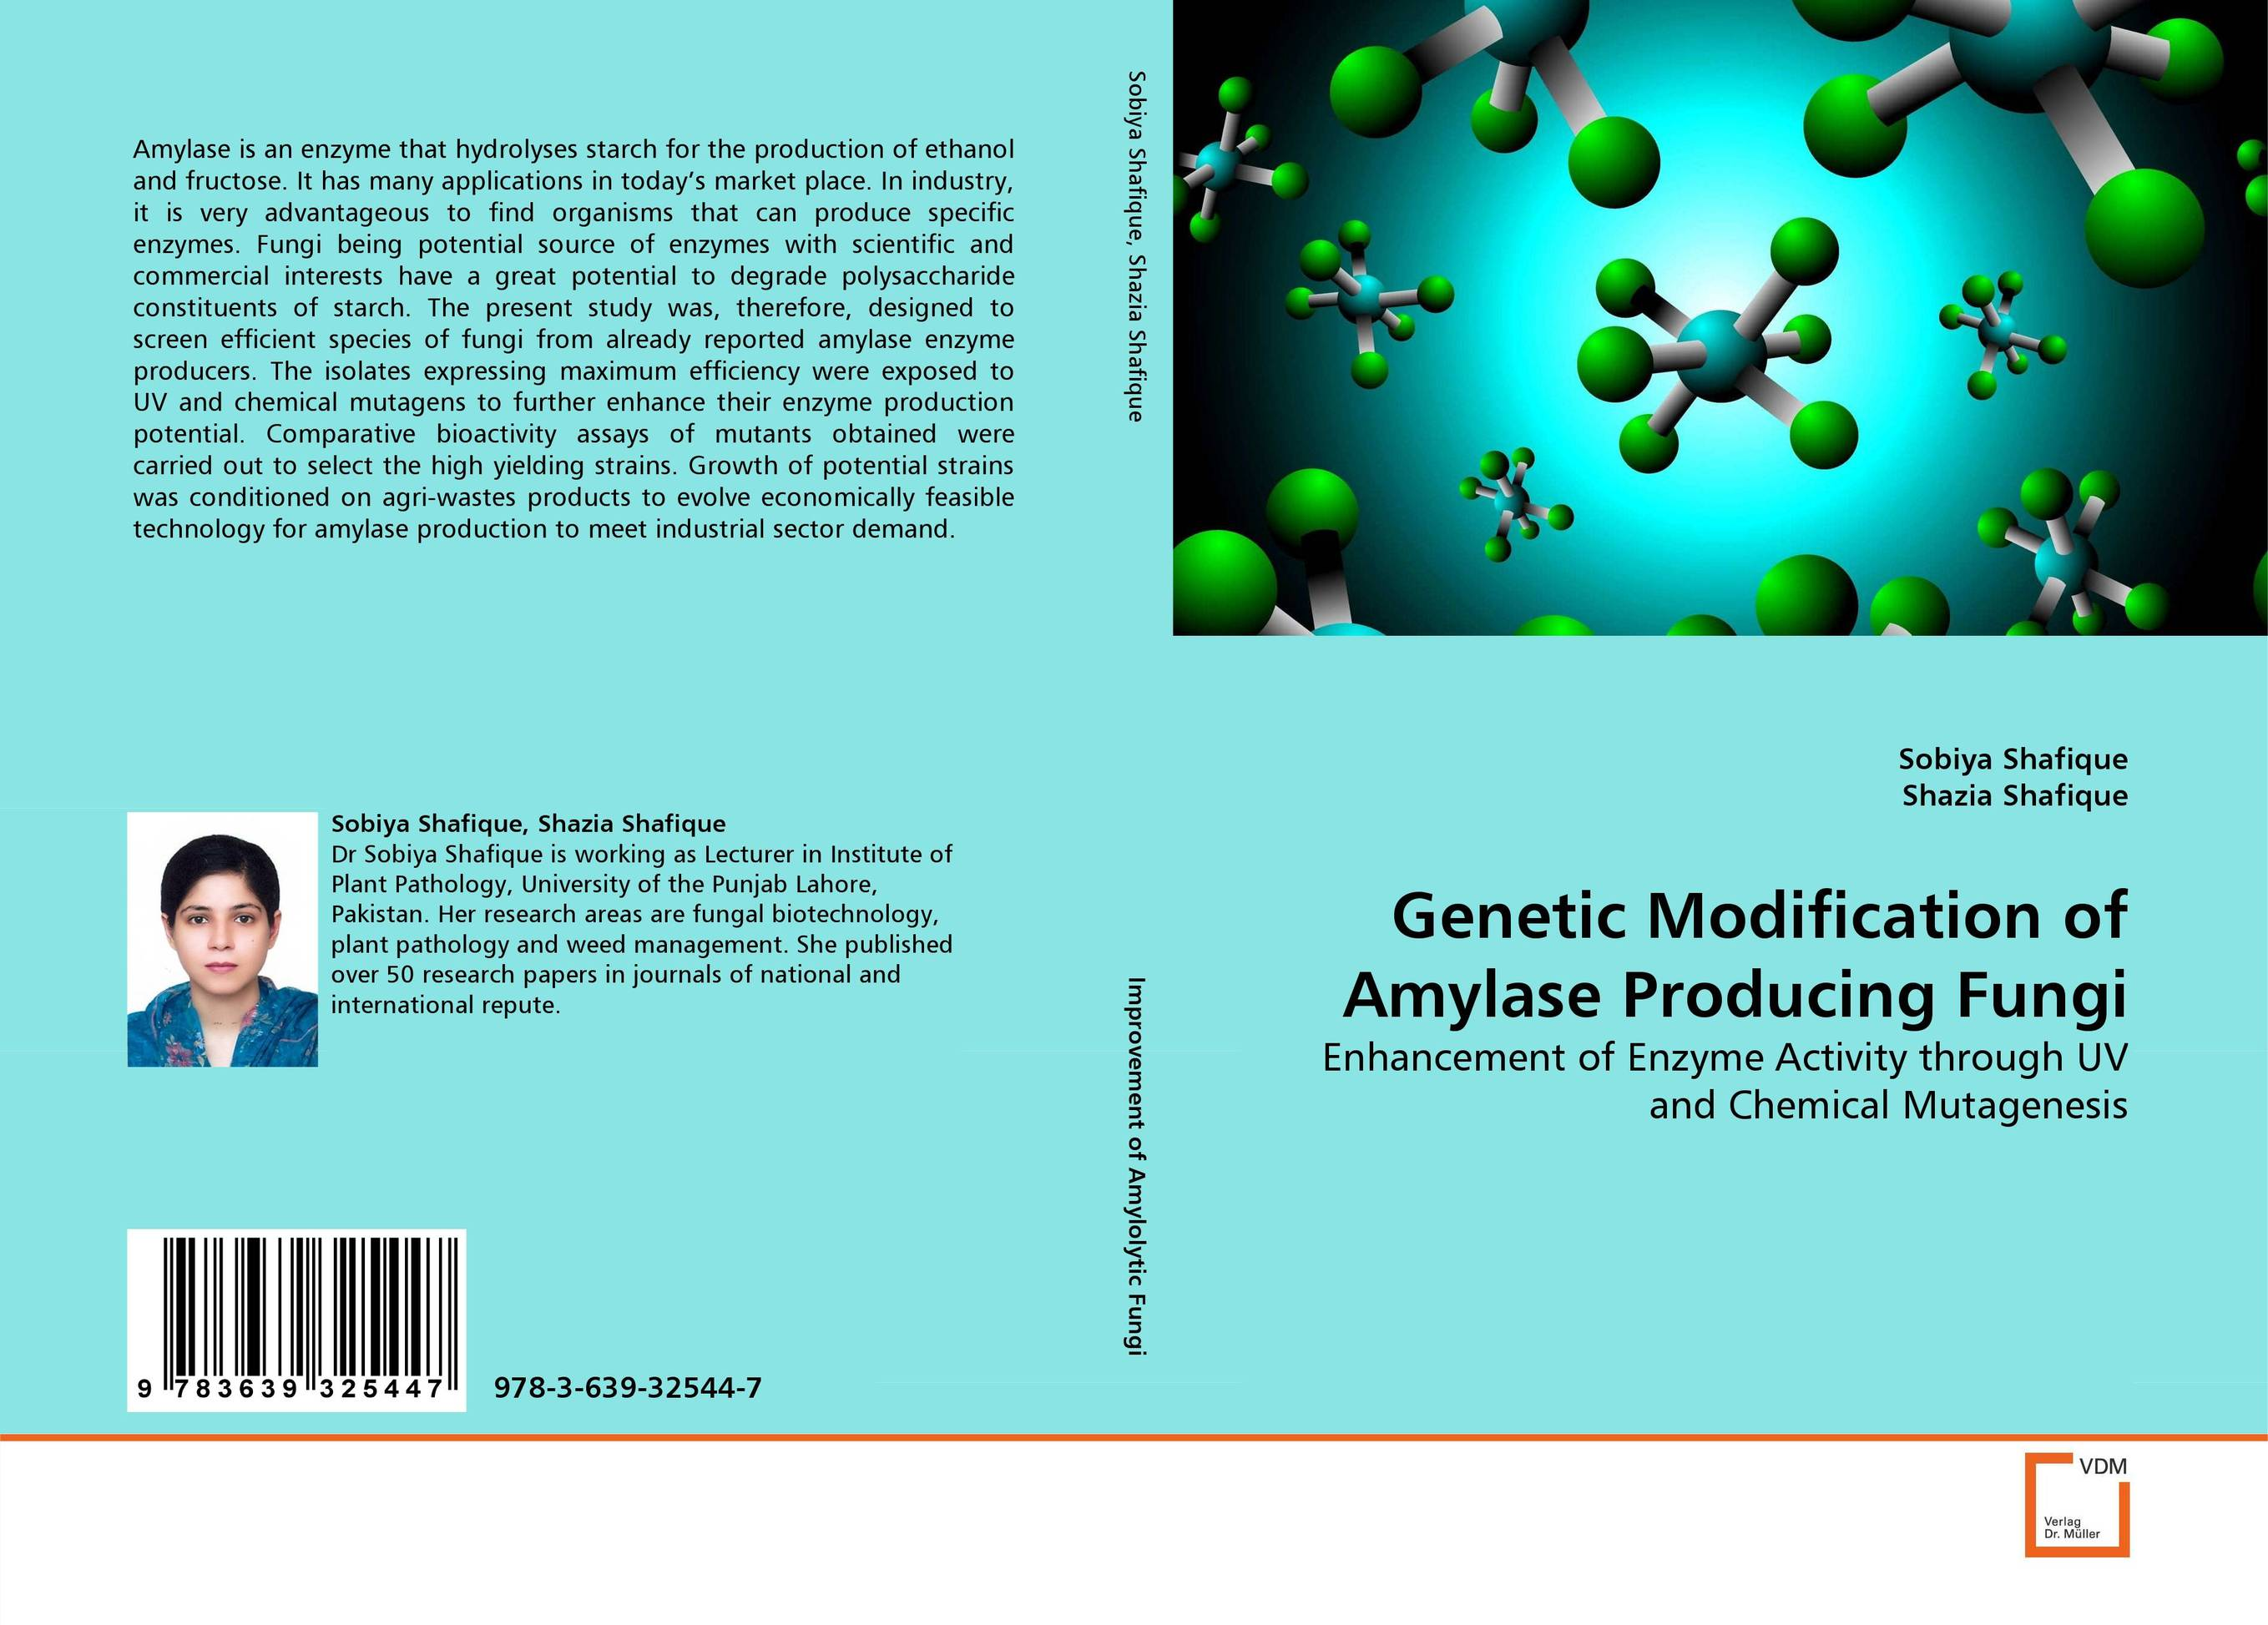 Genetic Modification of Amylase Producing Fungi tannase producing fungi